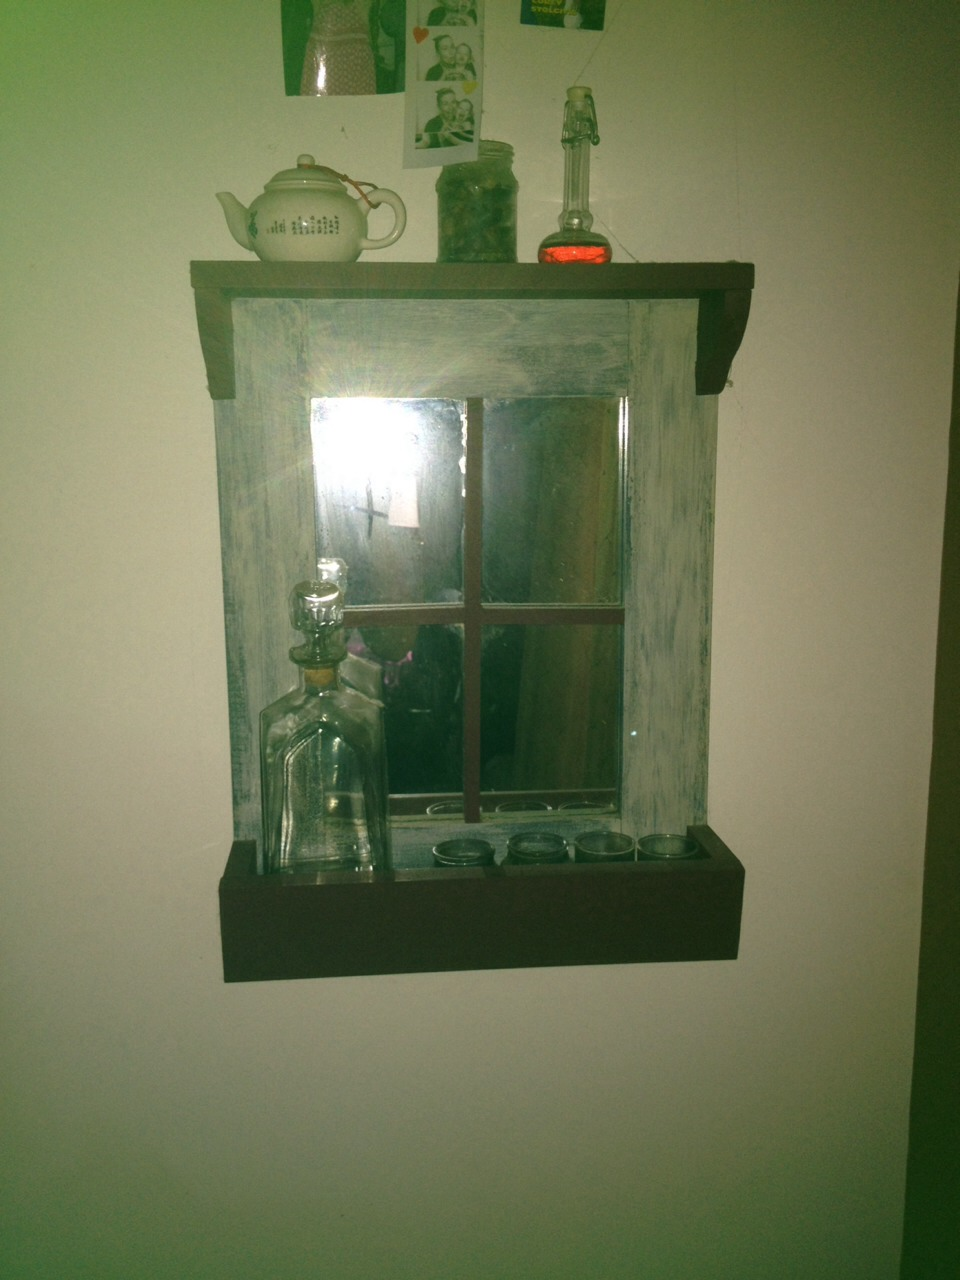 I also made this out of one 1inch by 4inch board some wood glue and finishing nails then I glued an old mirror to the back and added the 2strips of wood to make it look like an old window frame.,,